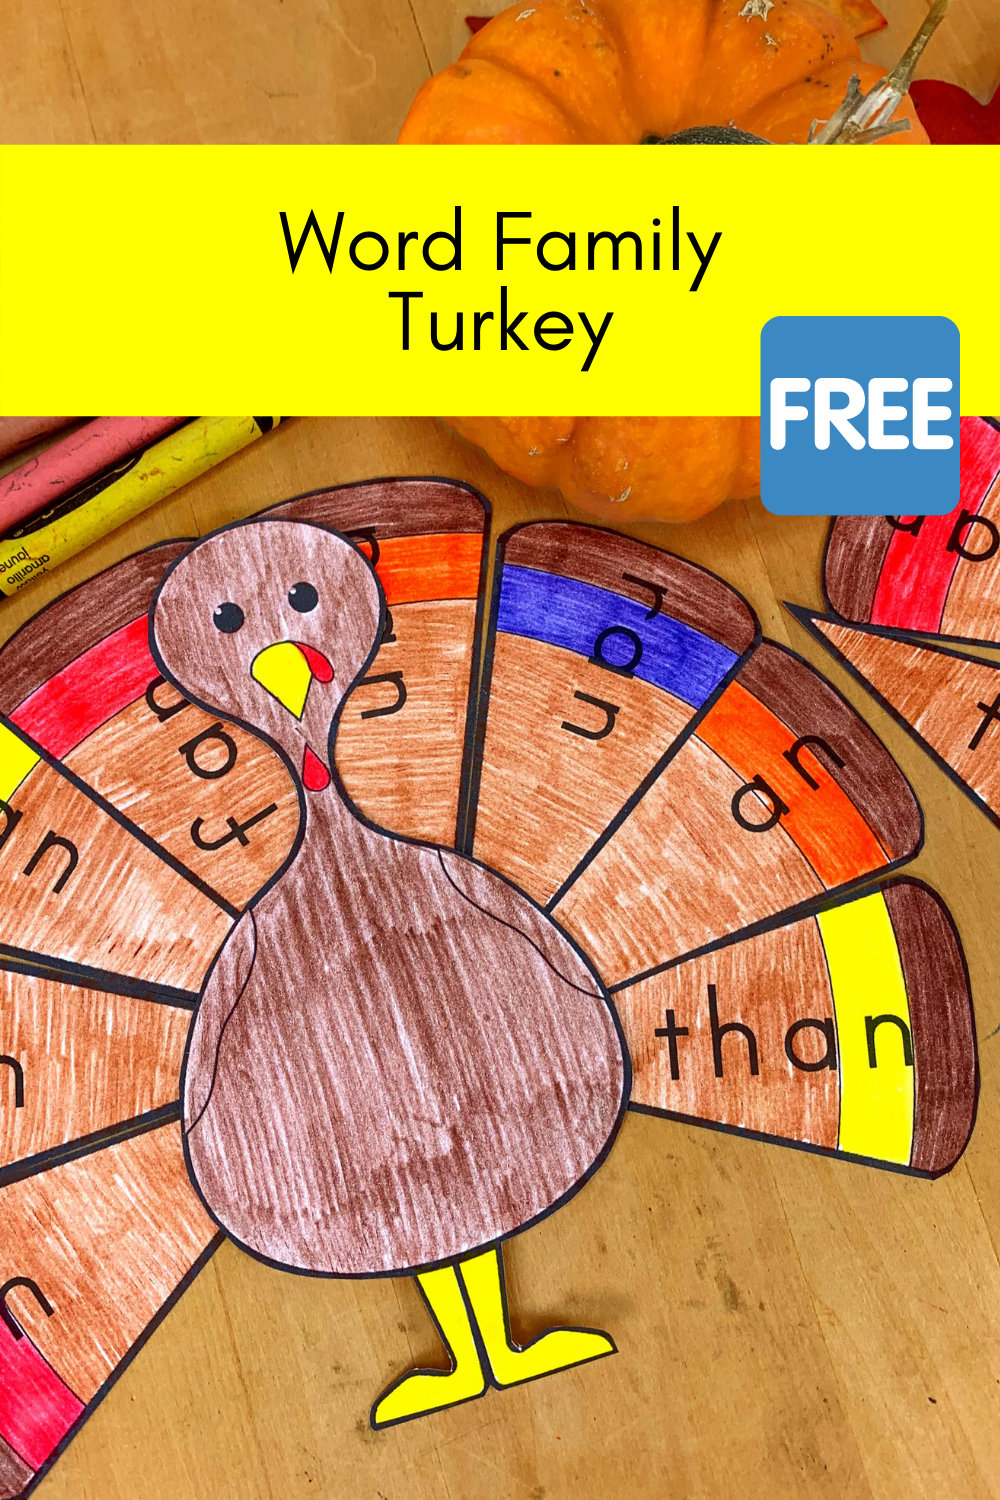 Word Family Turkey